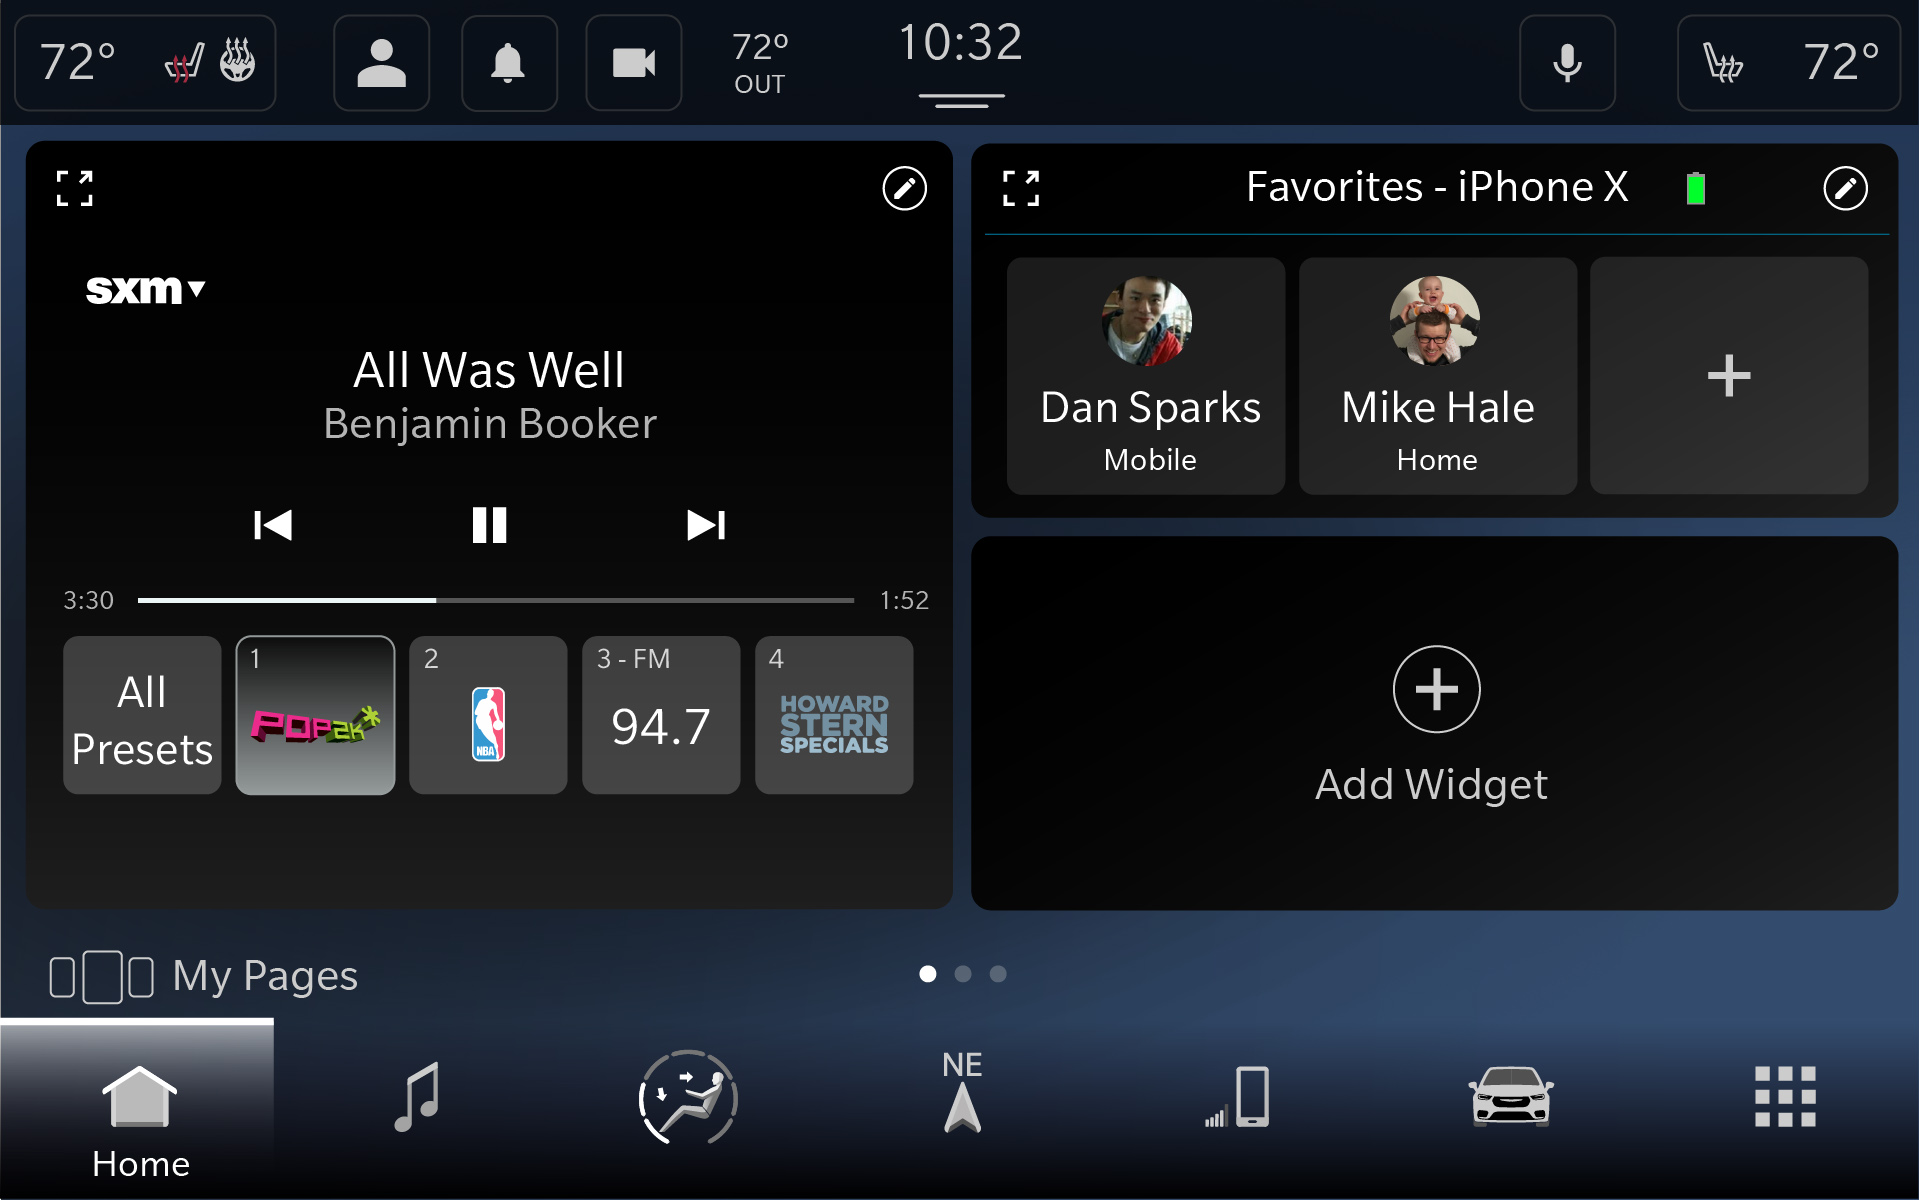 Fiat Chrysler's Android-Based Uconnect 5 Infotainment System Gains Wireless CarPlay and More - MacRumors